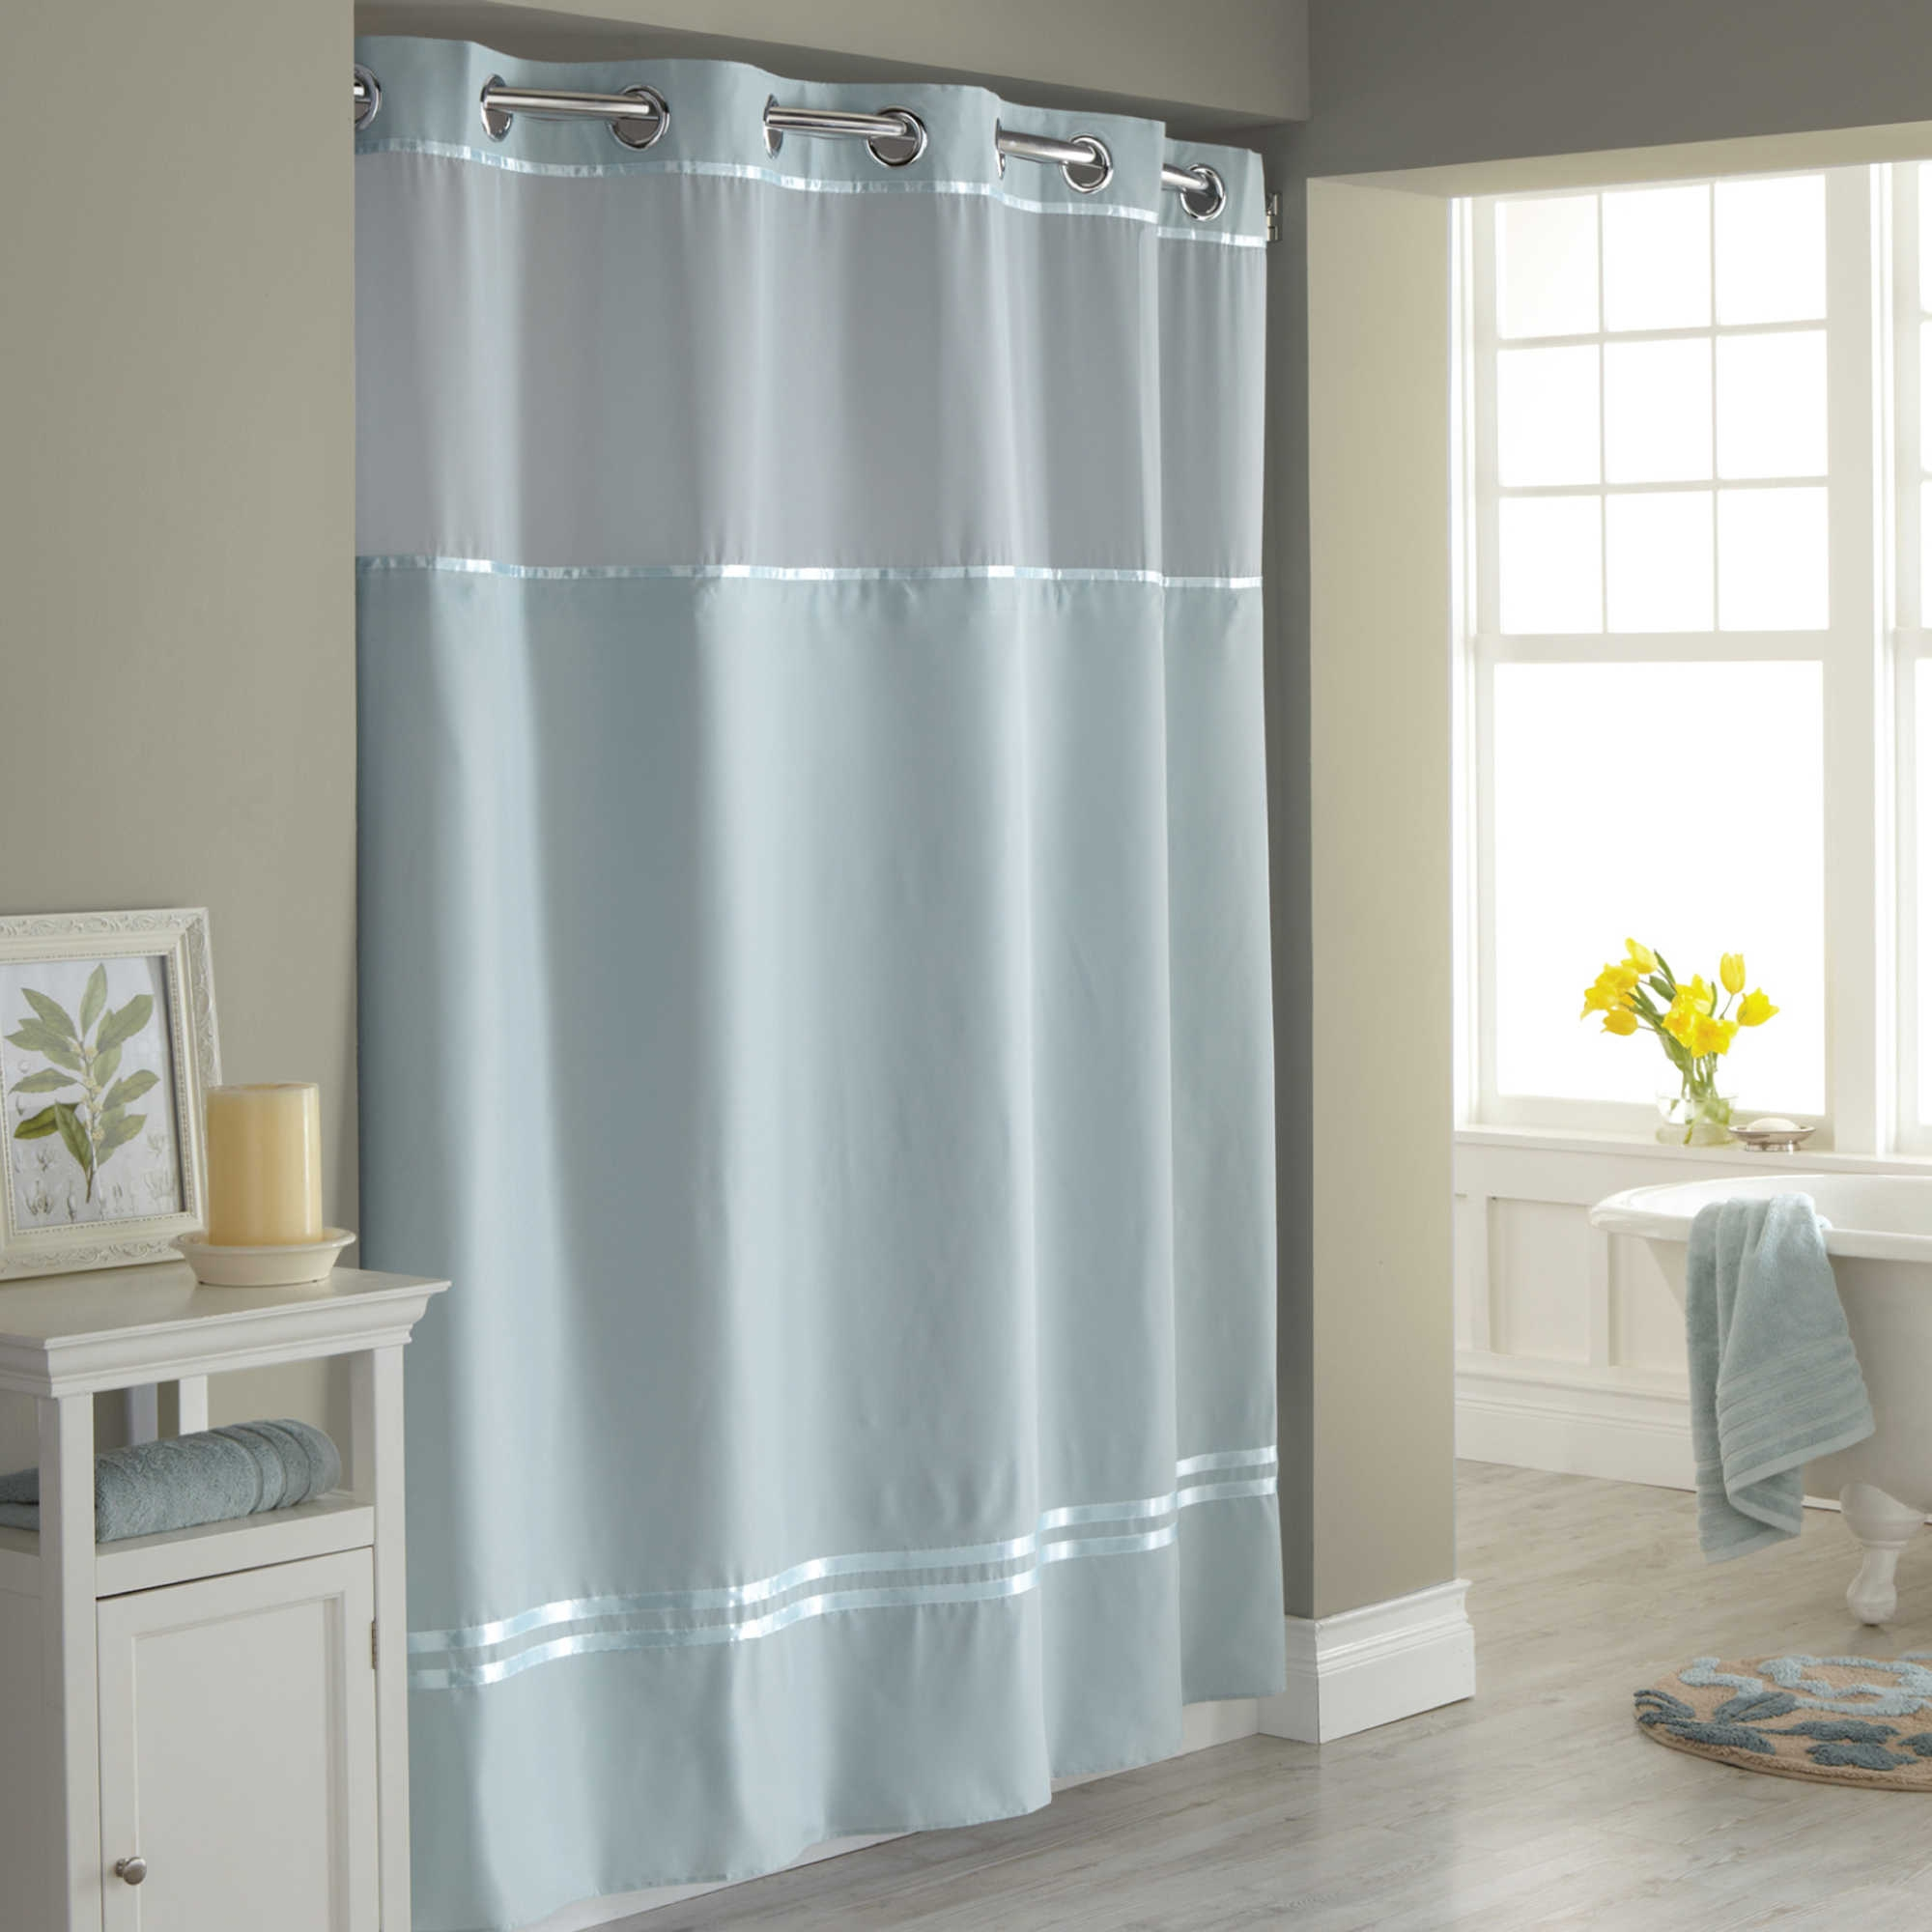 7 Foot Curved Shower Curtain Rod Curtains Ideas